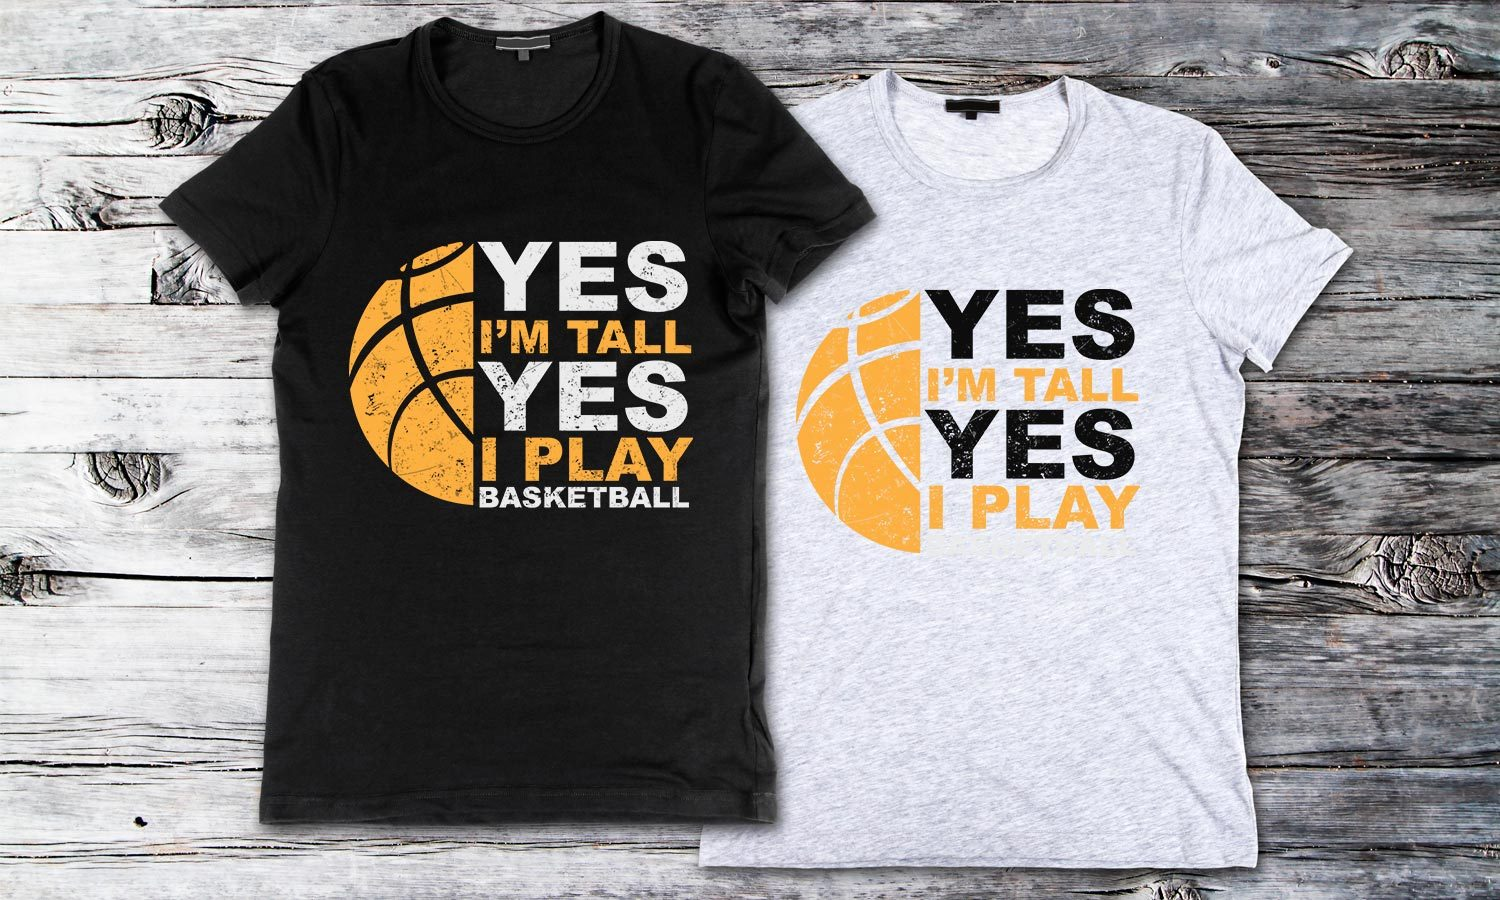 Yes I'm Tall - Printed T-Shirt for Men, Women and Kids - TS240